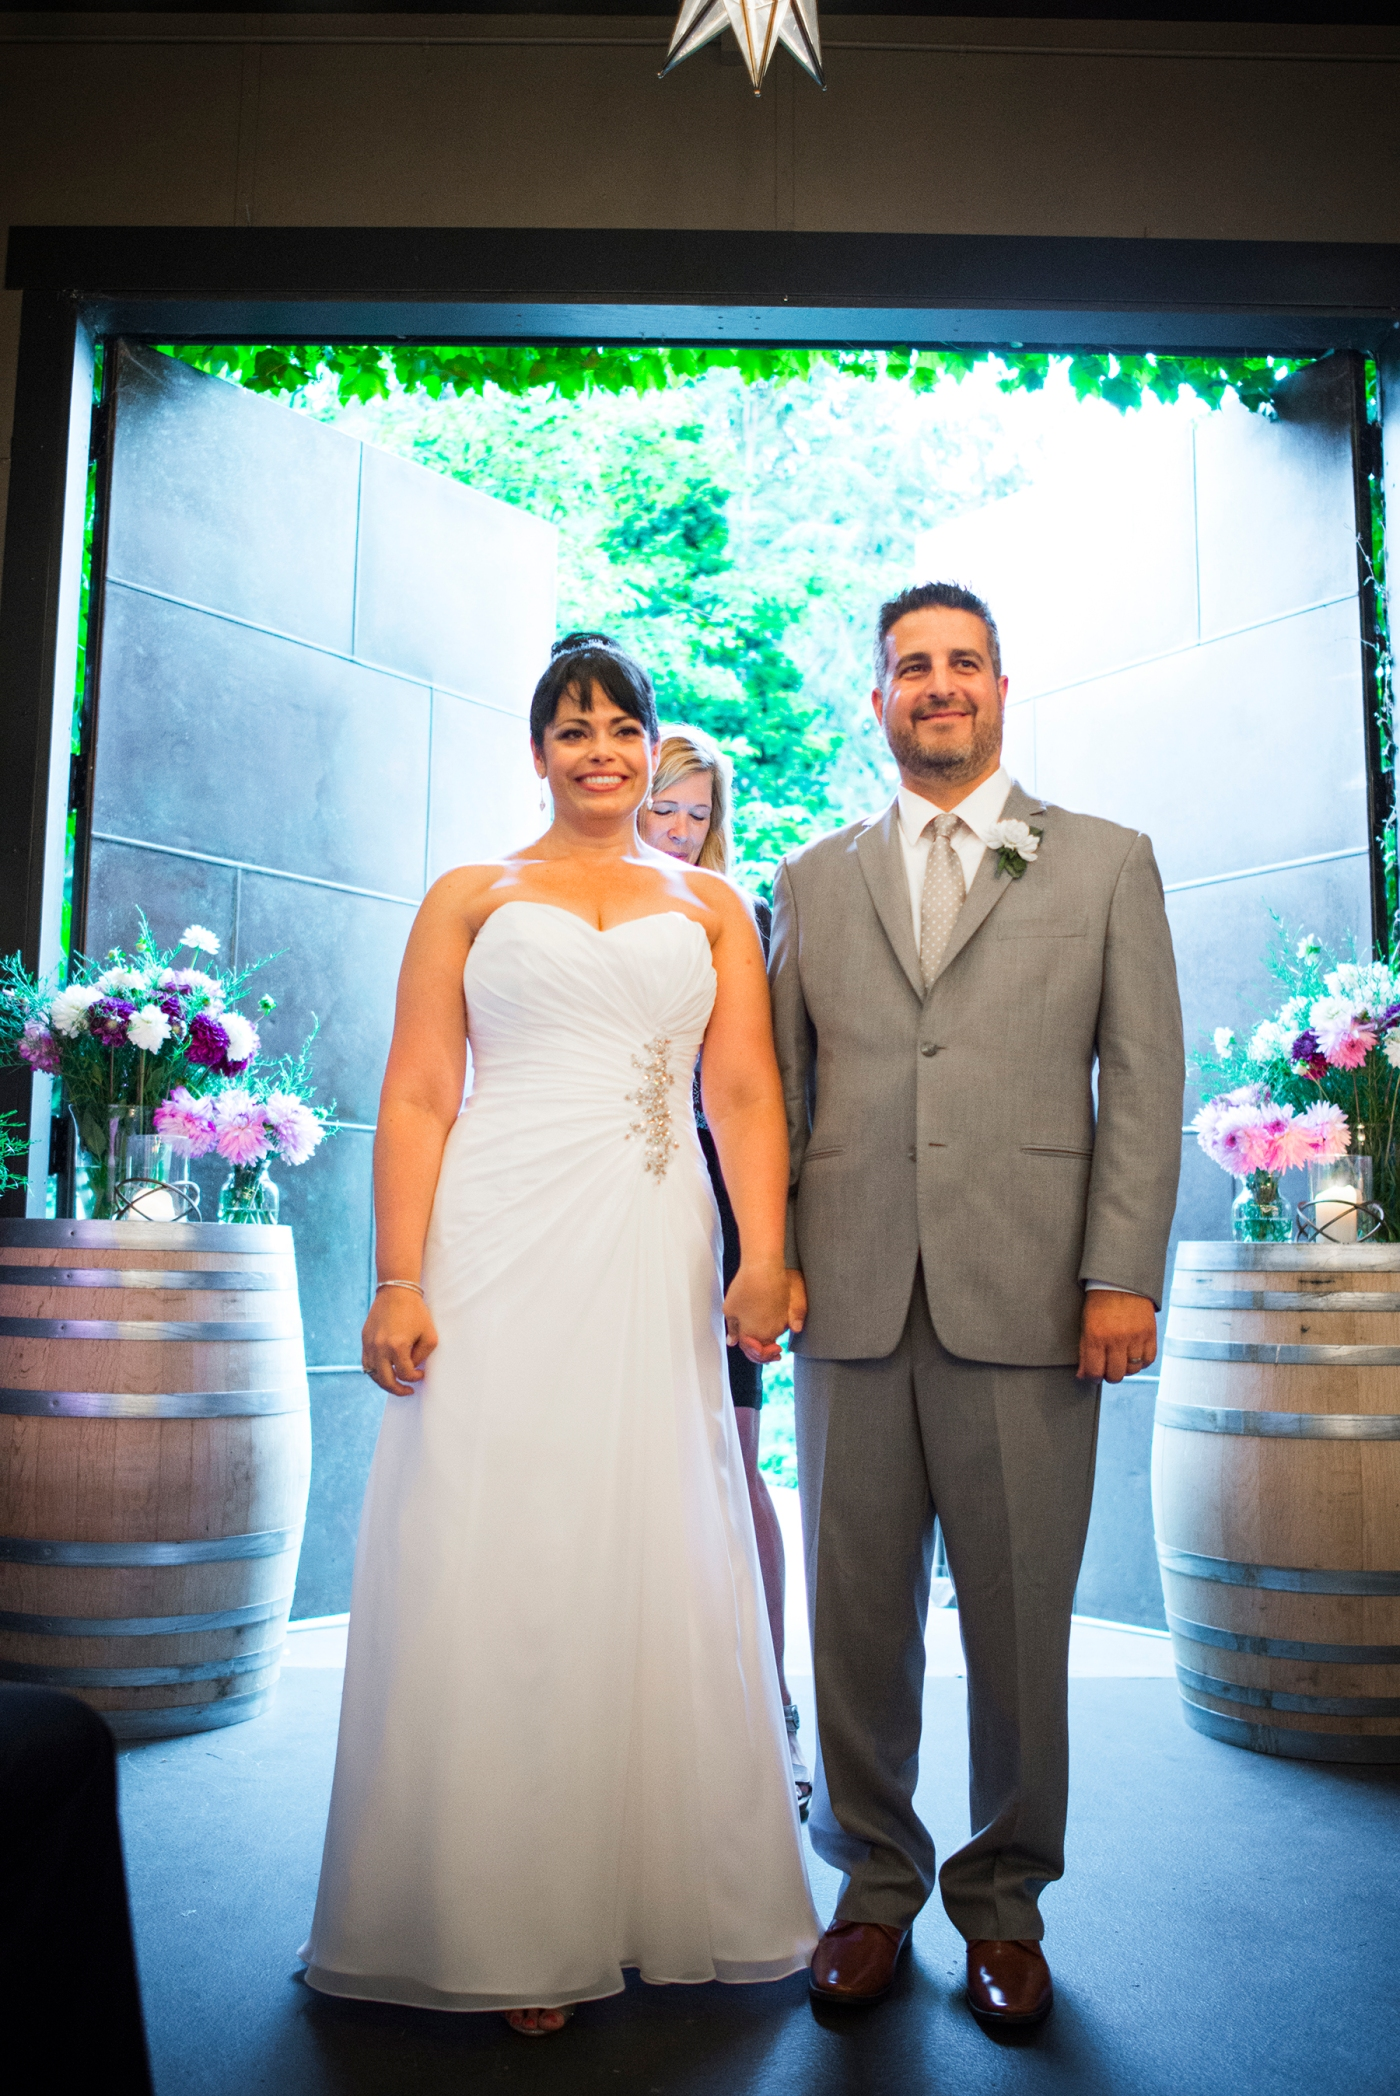 ang_matt_jm_woodinville_2016_js_photography_weddingdsc_3294